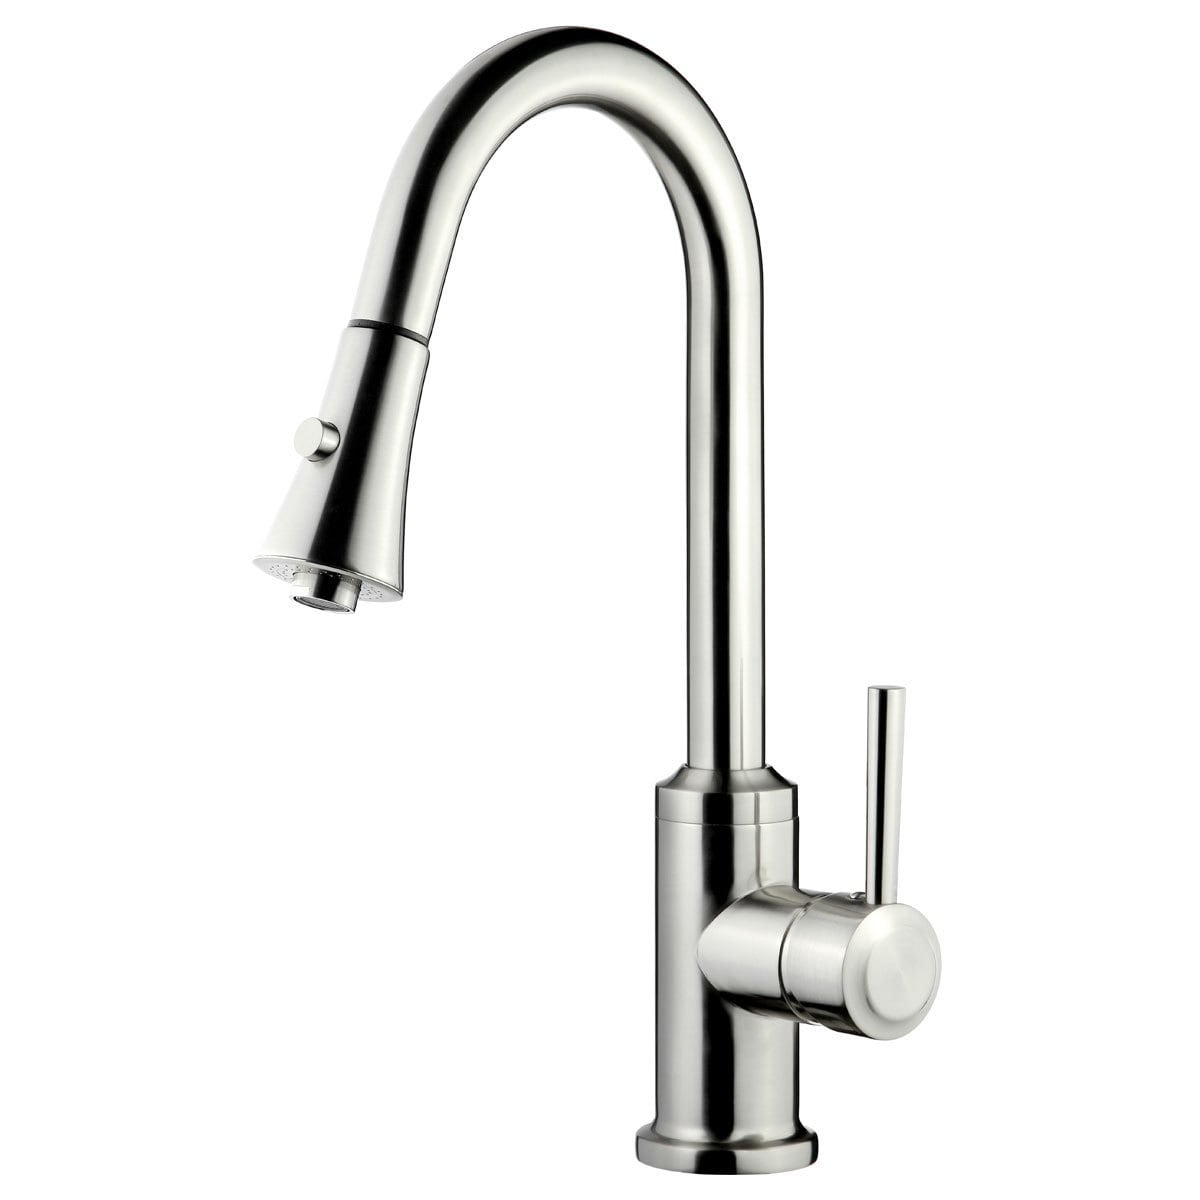 LK11B Pull Out Kitchen Faucet, Brushed Nickel Finish